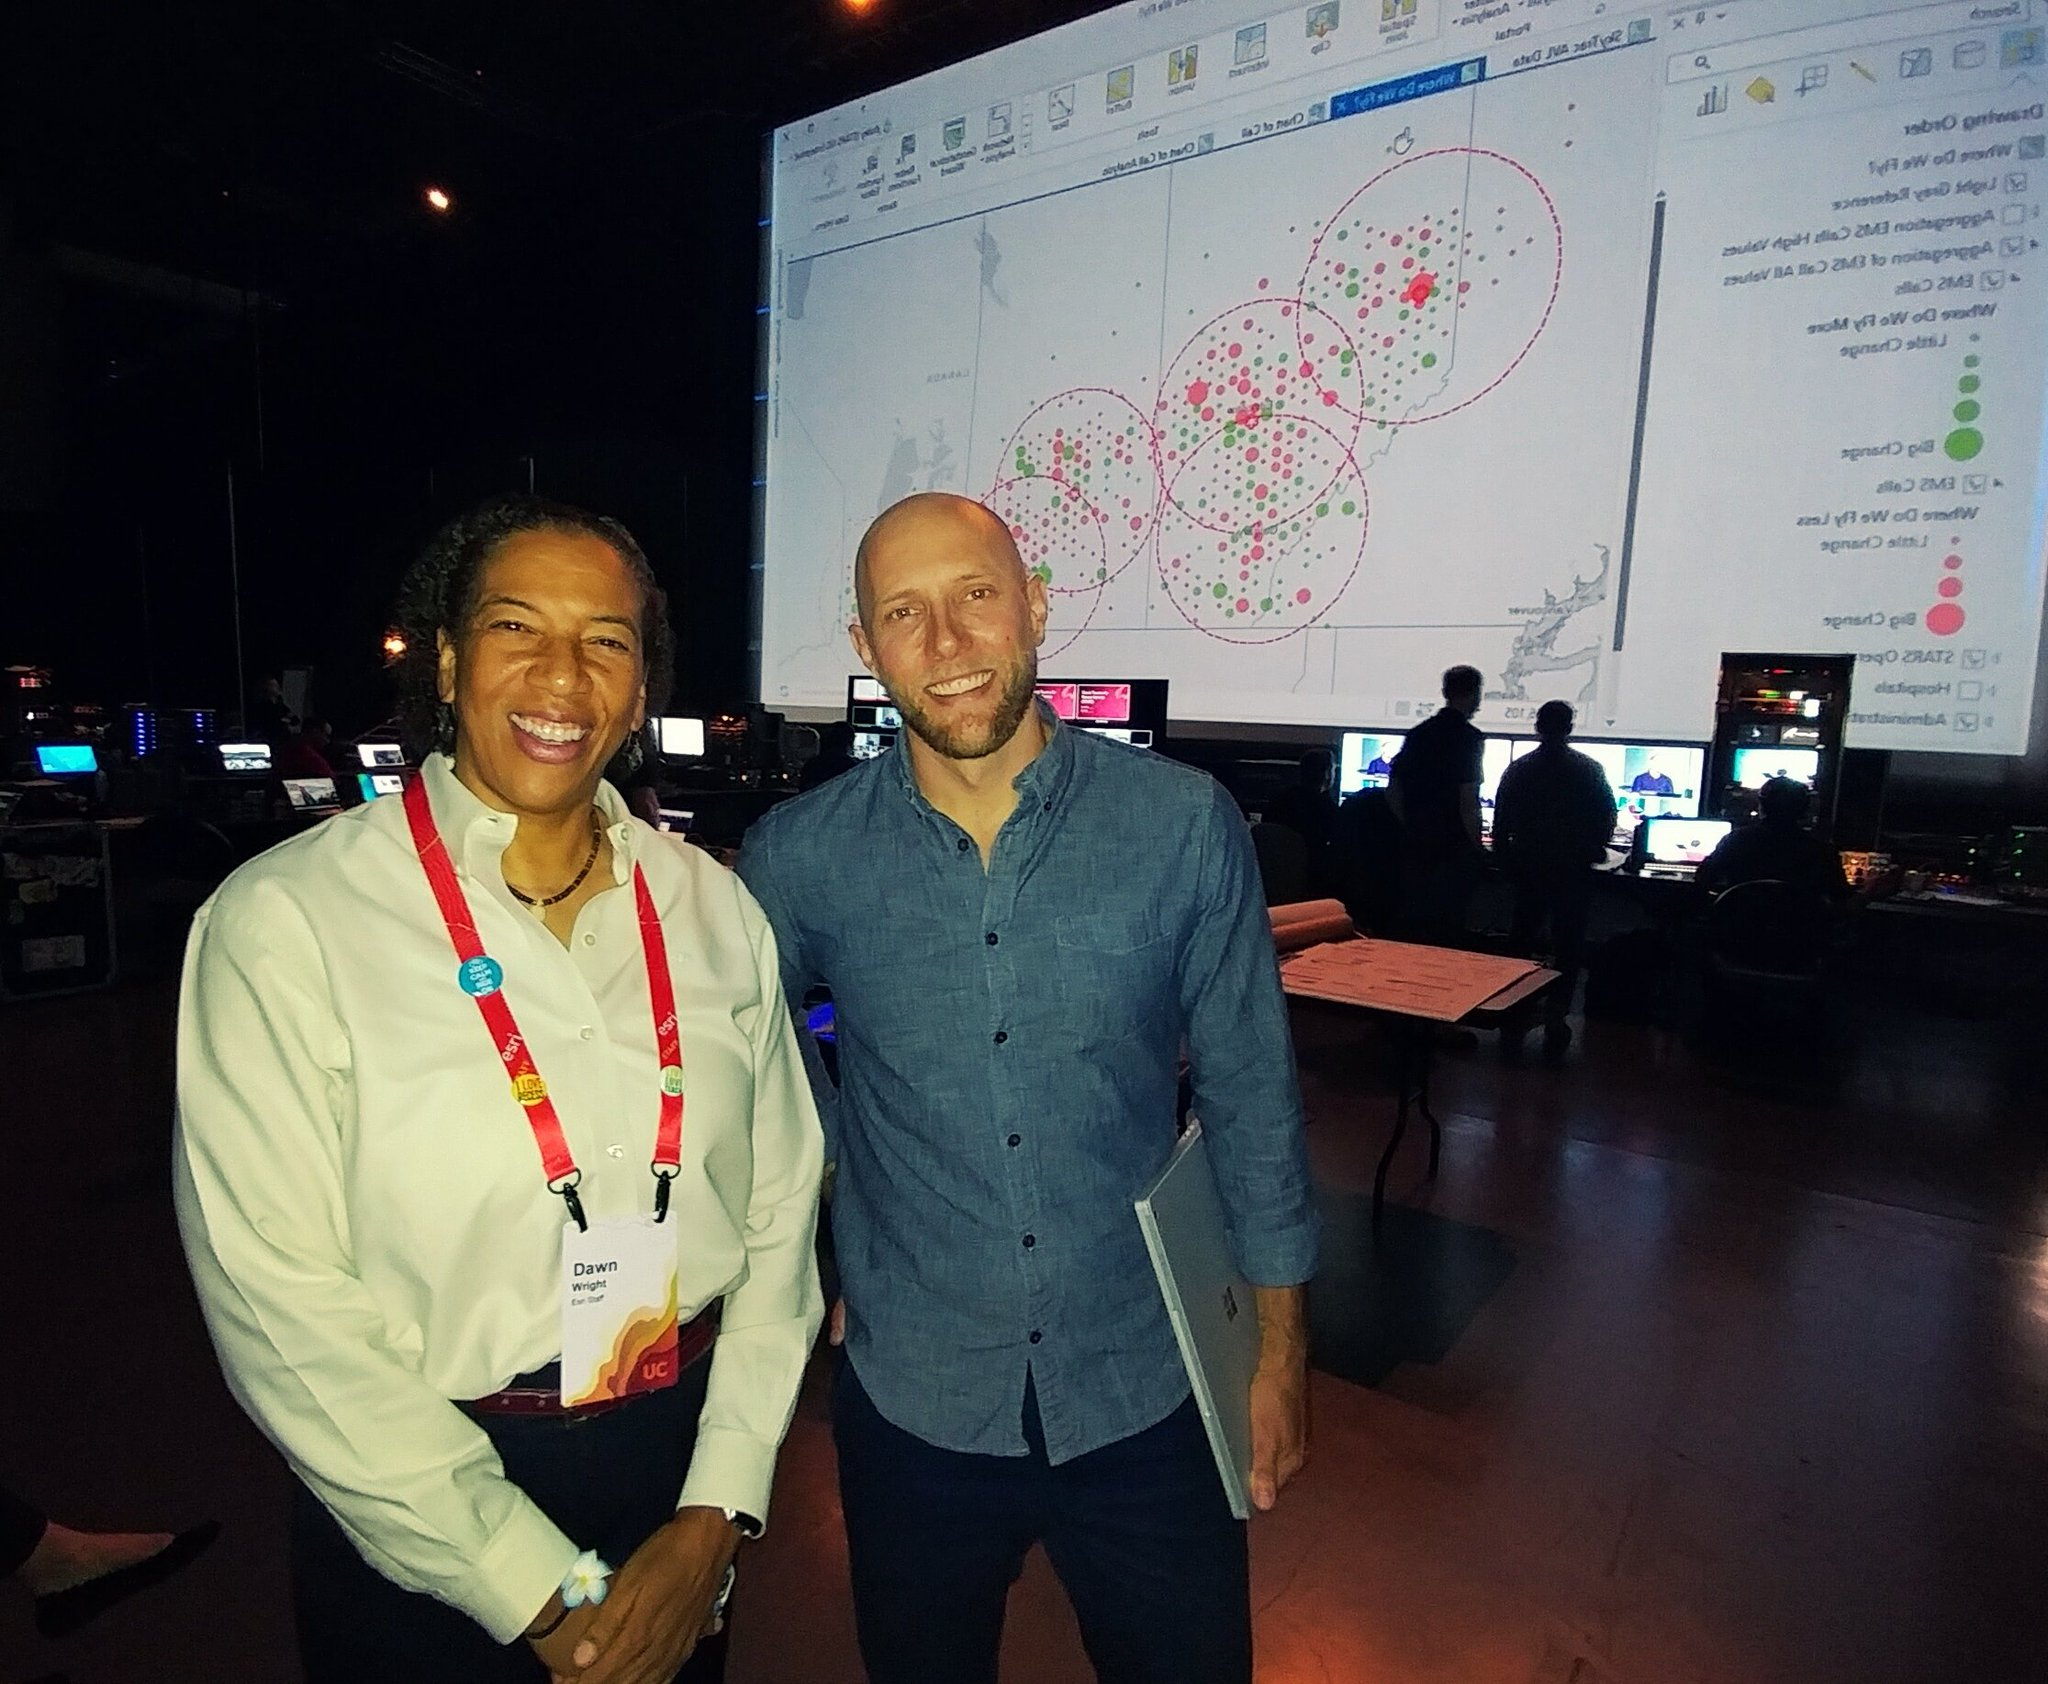 Chief Scientists united for a sustainable future @deepseadawn & @lucasjoppa #ESRIUC2017 https://t.co/NHW6b2voTy